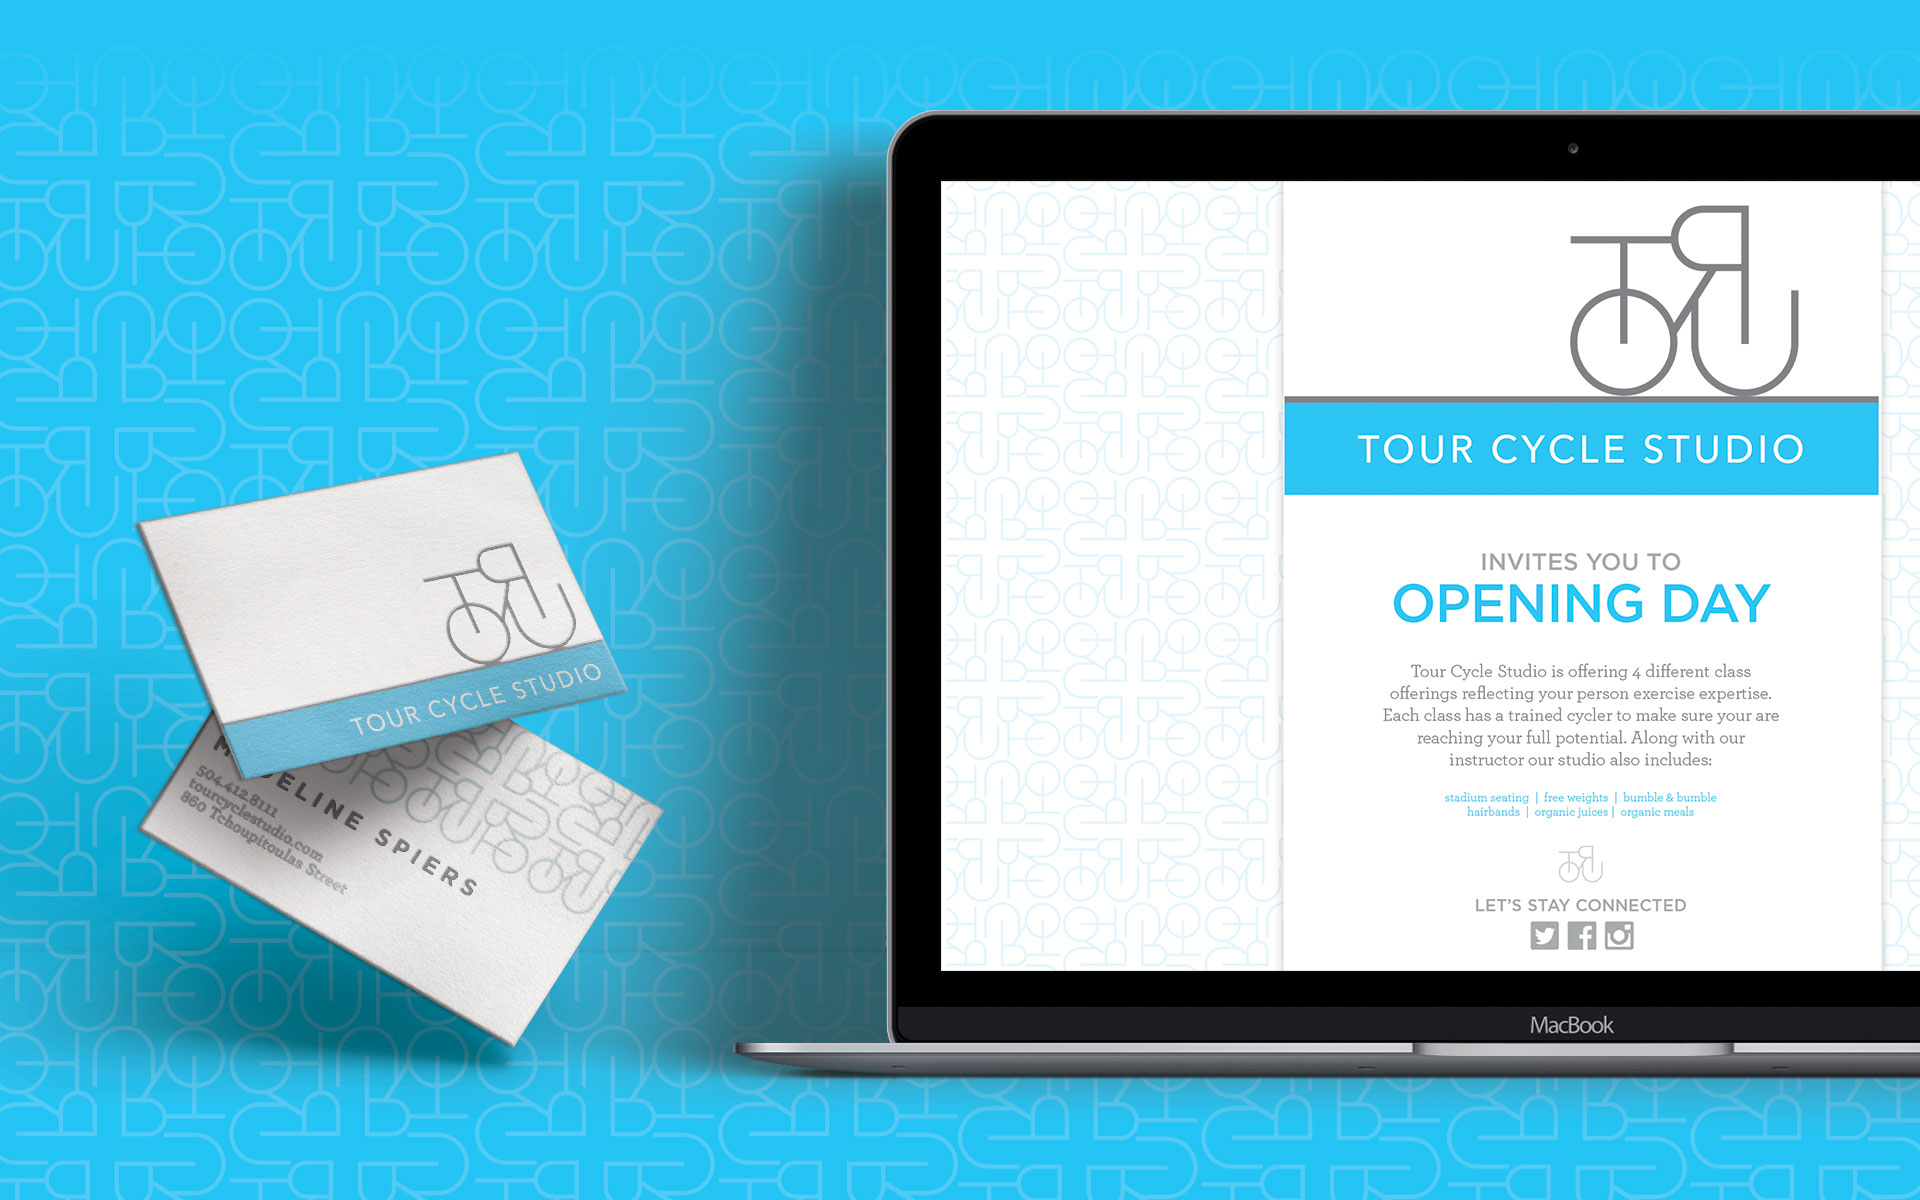 Tour Cycle Studios - Marketing Collateral Website Business Cards